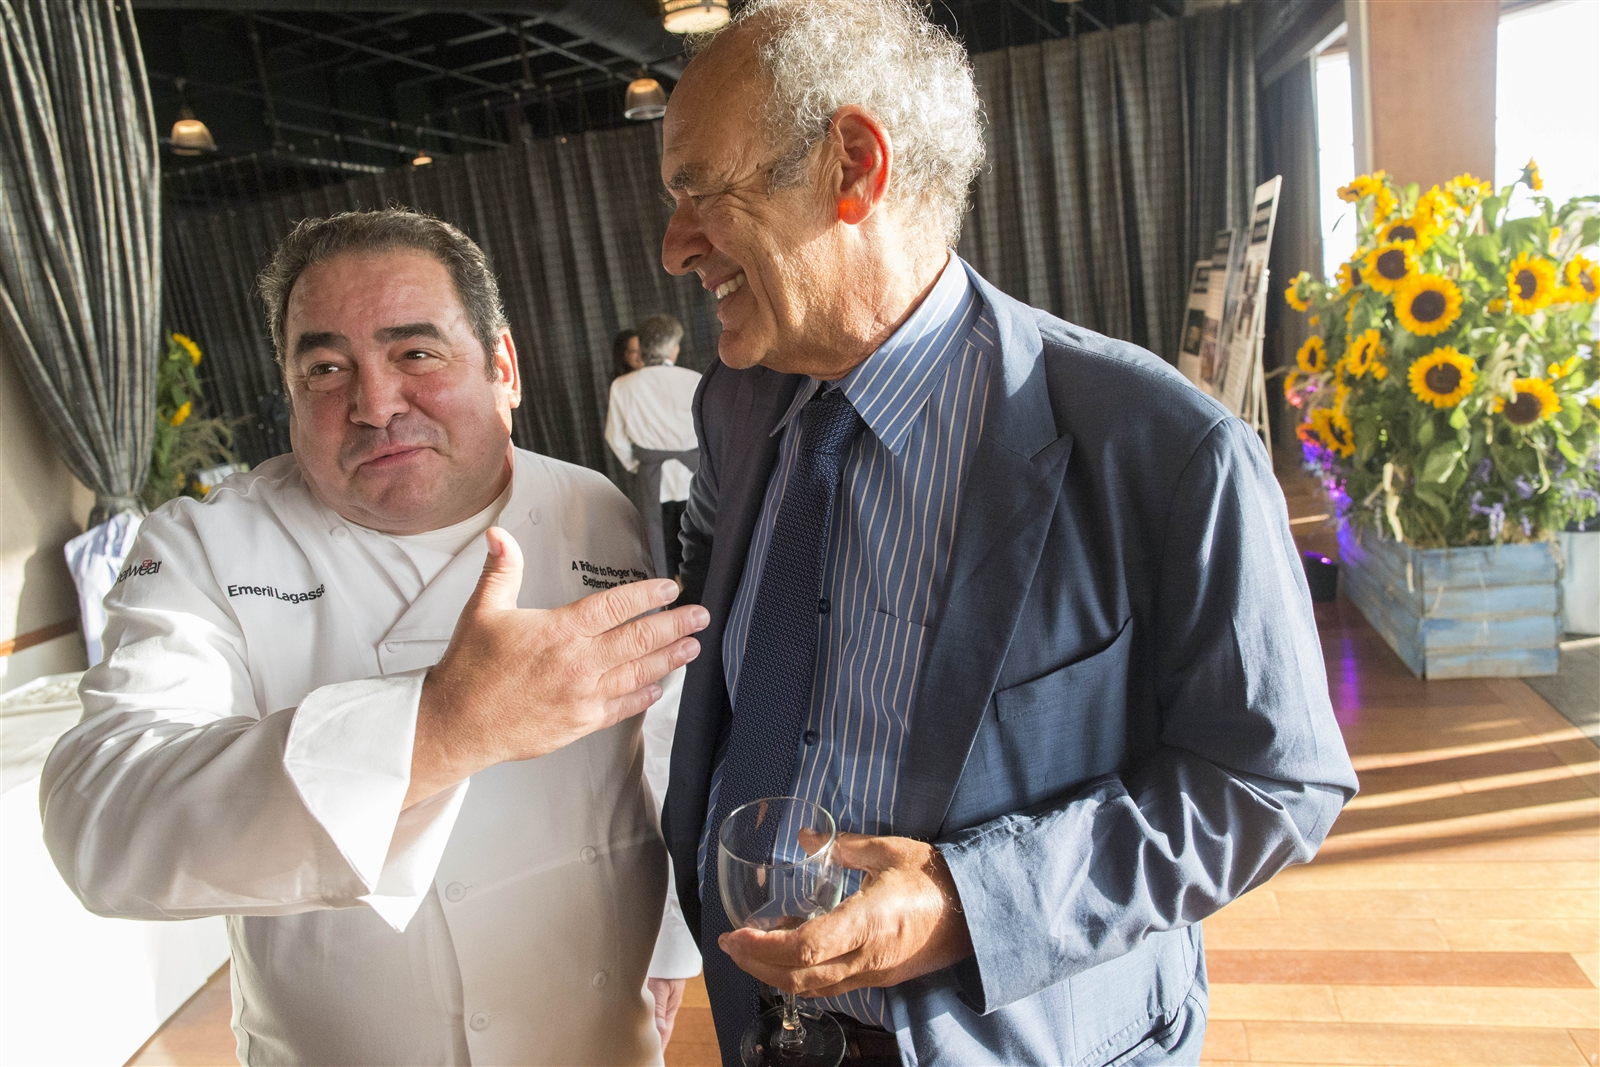 Legendary producer Shep Gordon, right, chats with celebrity chef Emeril Lagasse during a fundraiser to start a scholarship to the Culinary Institute of America in honor of his late friend, legendary chef Roger Verge, at the Lighthouse at Chelsea Piers in New York City. Name dropping is what happens when you tell the story of Shep Gordon, because the man knows everyone the rest of us want to know, and more.